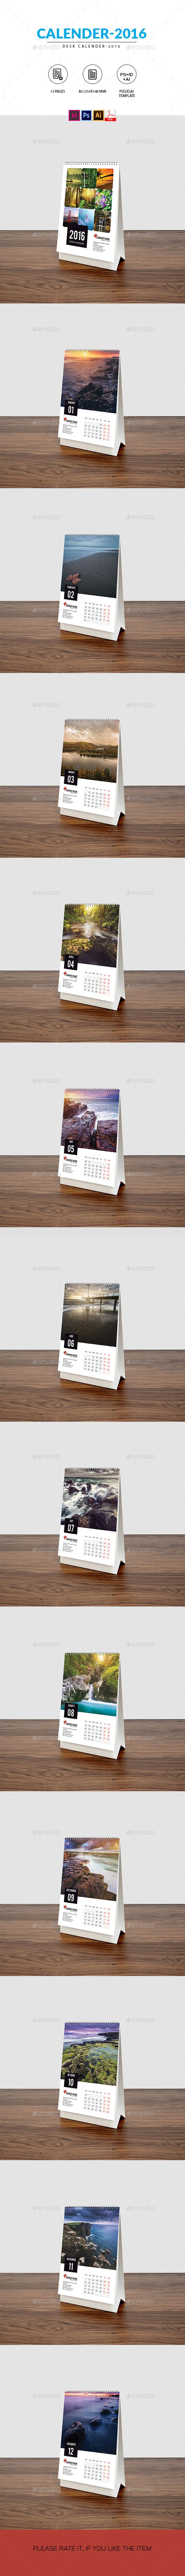 Desk Calendar 2016 Template #design Download: http://graphicriver.net/item/desk-calendar-2016/13502238?ref=ksioks